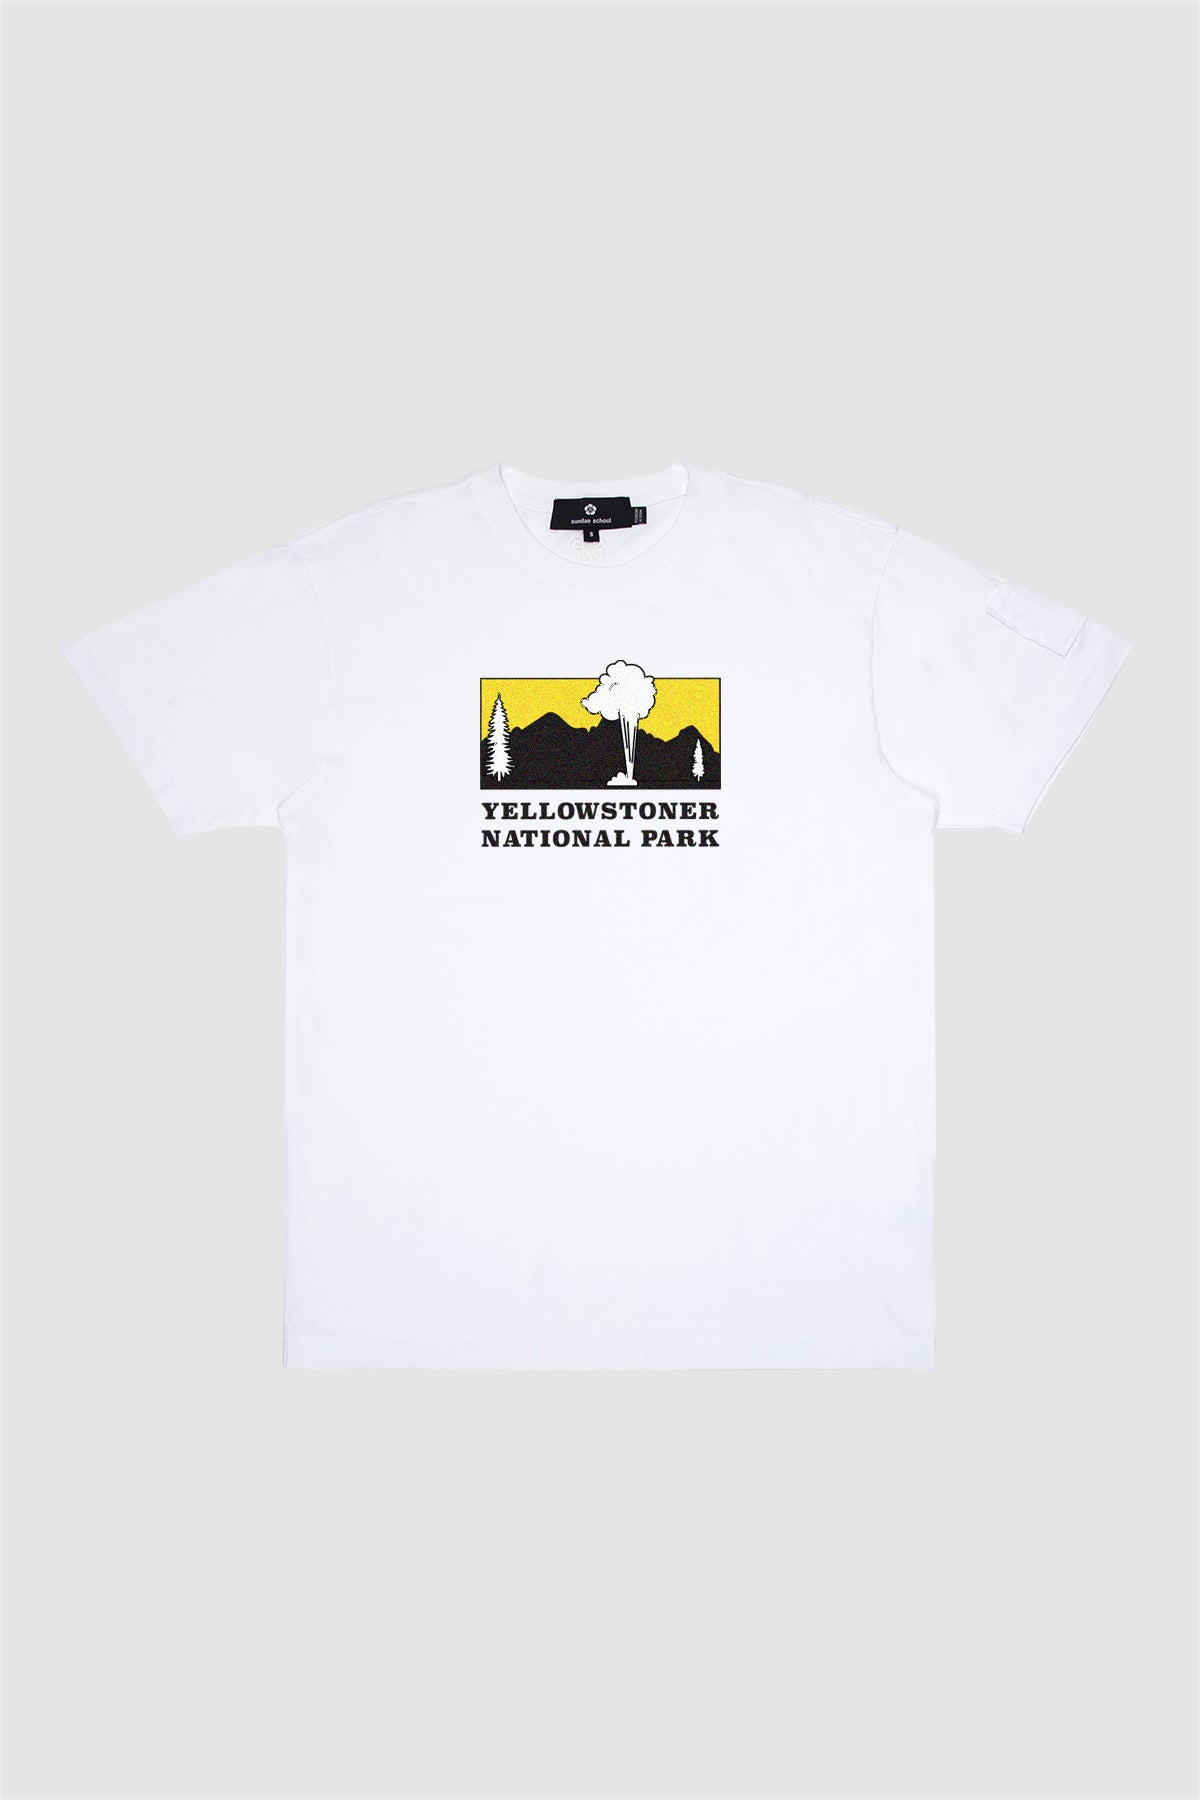 Yellowstone(r) National Park T-Shirt